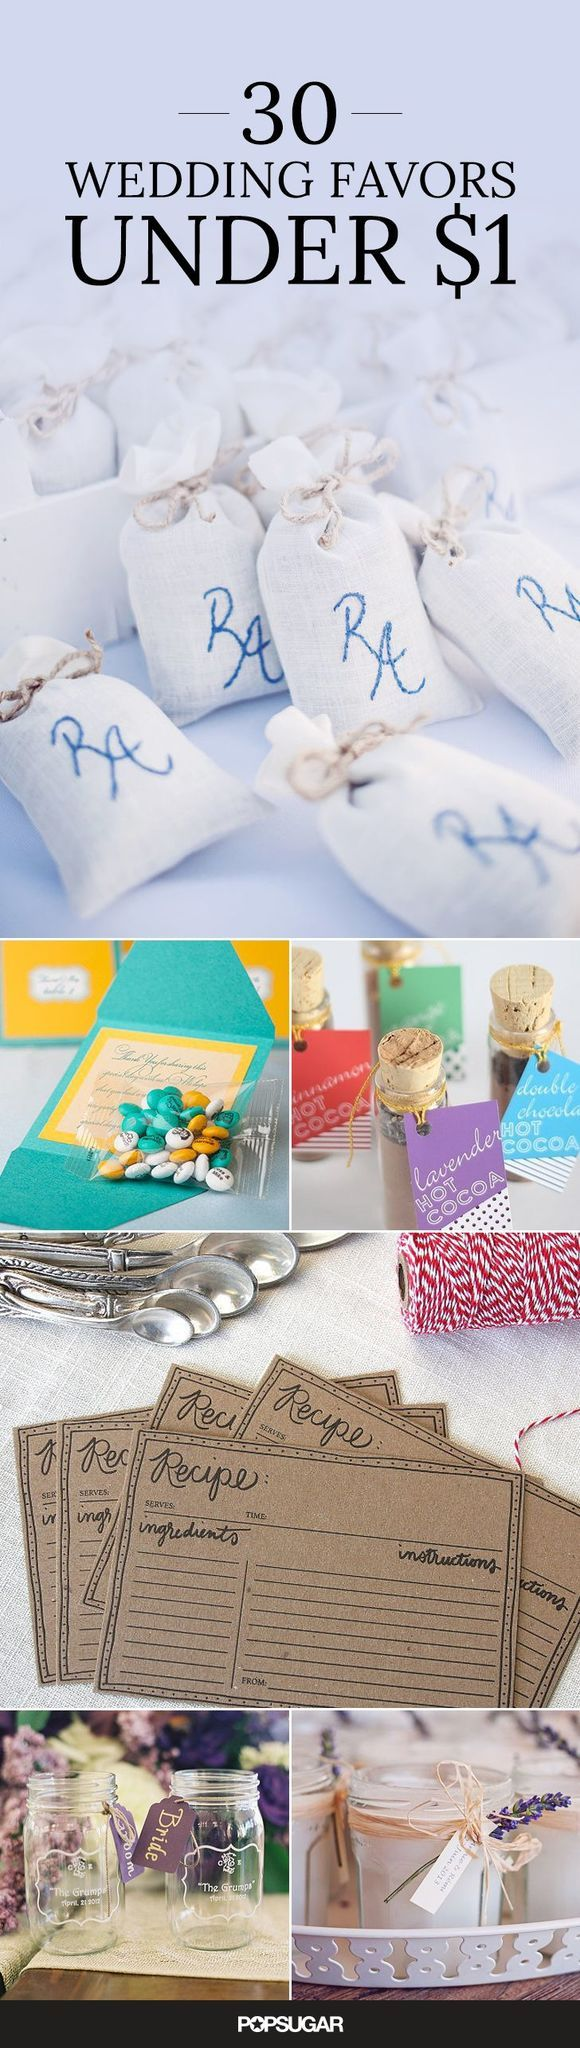 17 Best ideas about Inexpensive Wedding Gifts on Pinterest